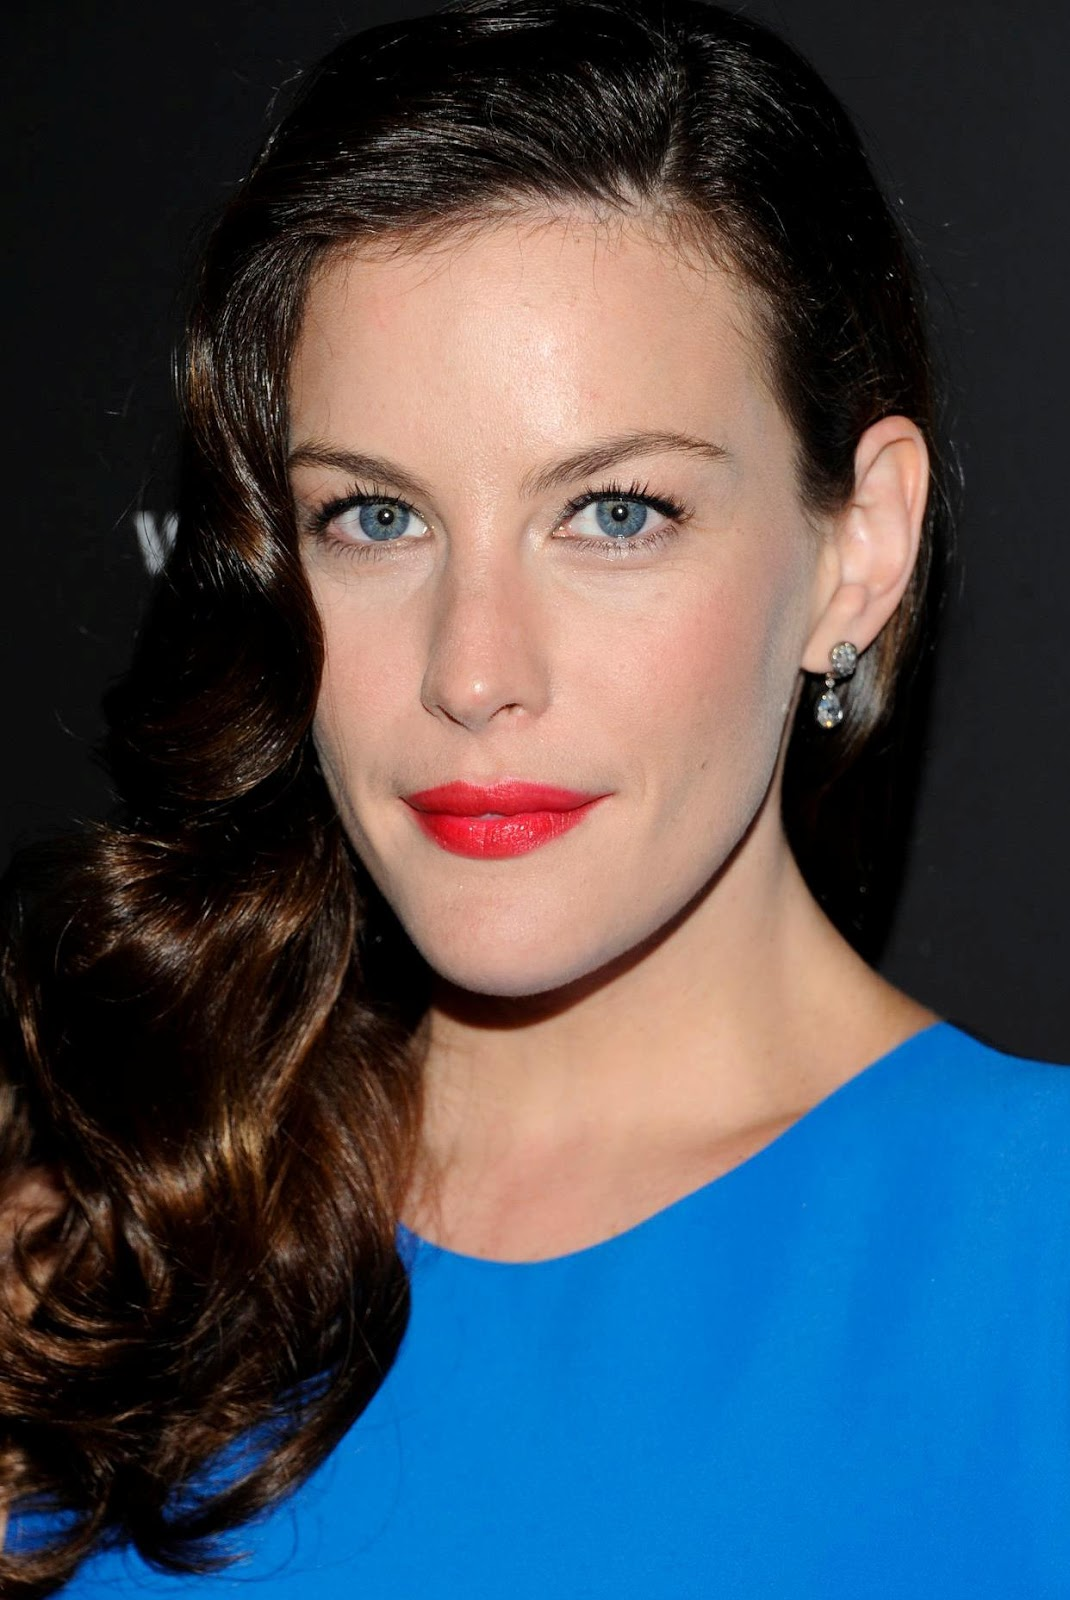 united states map with new york html with Liv Tyler on Attraction Review G60974 D276508 Reviews Buffalo City Hall Buffalo New York furthermore LocationPhotoDirectLink G47738 I23991976 Fort Drum New York likewise Phuket Th furthermore Bootstrap besides LocationPhotoDirectLink G47682 D3242680 I42716495 Eldridge Park Elmira Finger Lakes New York.